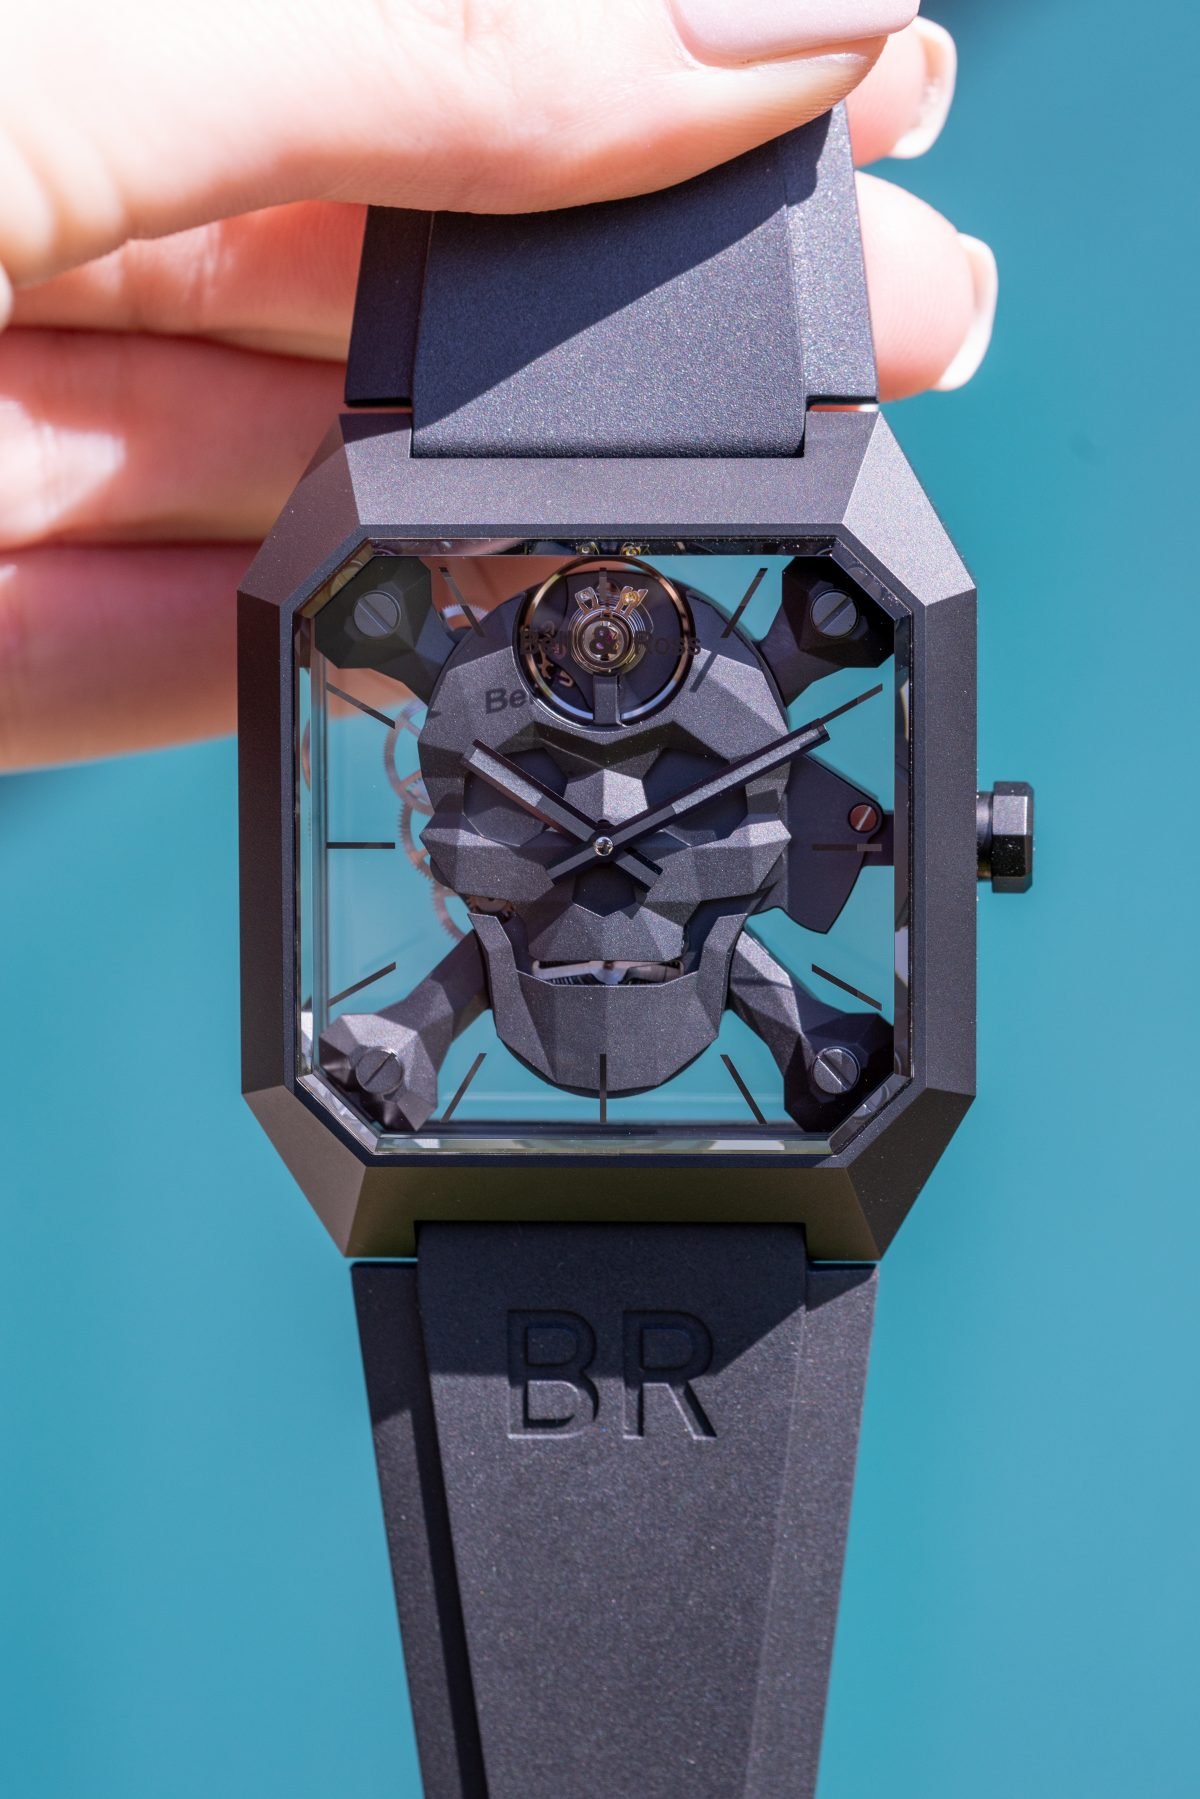 An iconic design from the Bell and Ross brand